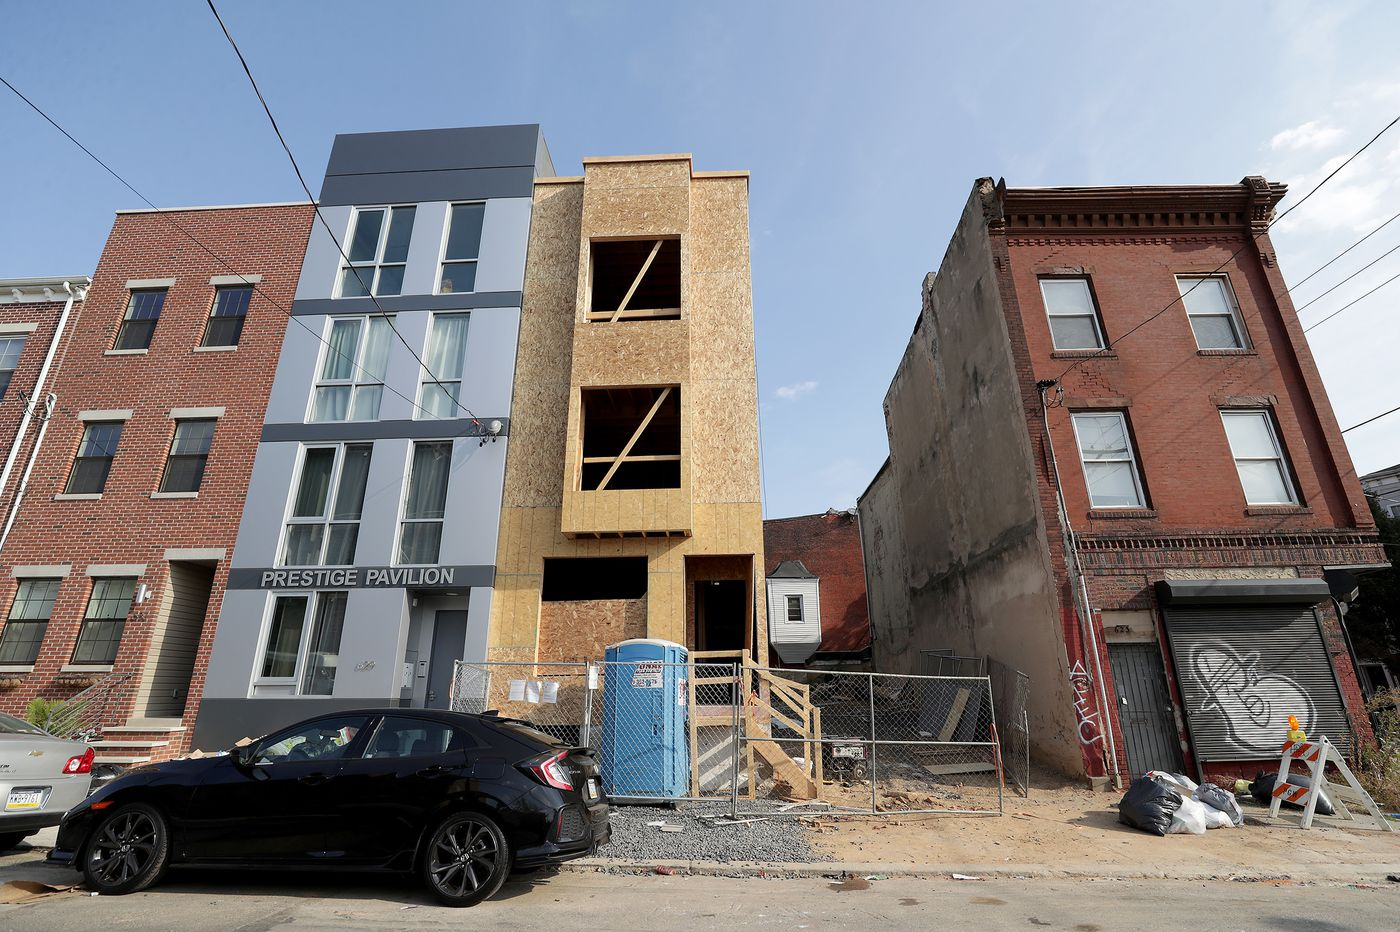 In gentrifying Philly, speculators pay heirs peanuts — then flip their properties for massive gains